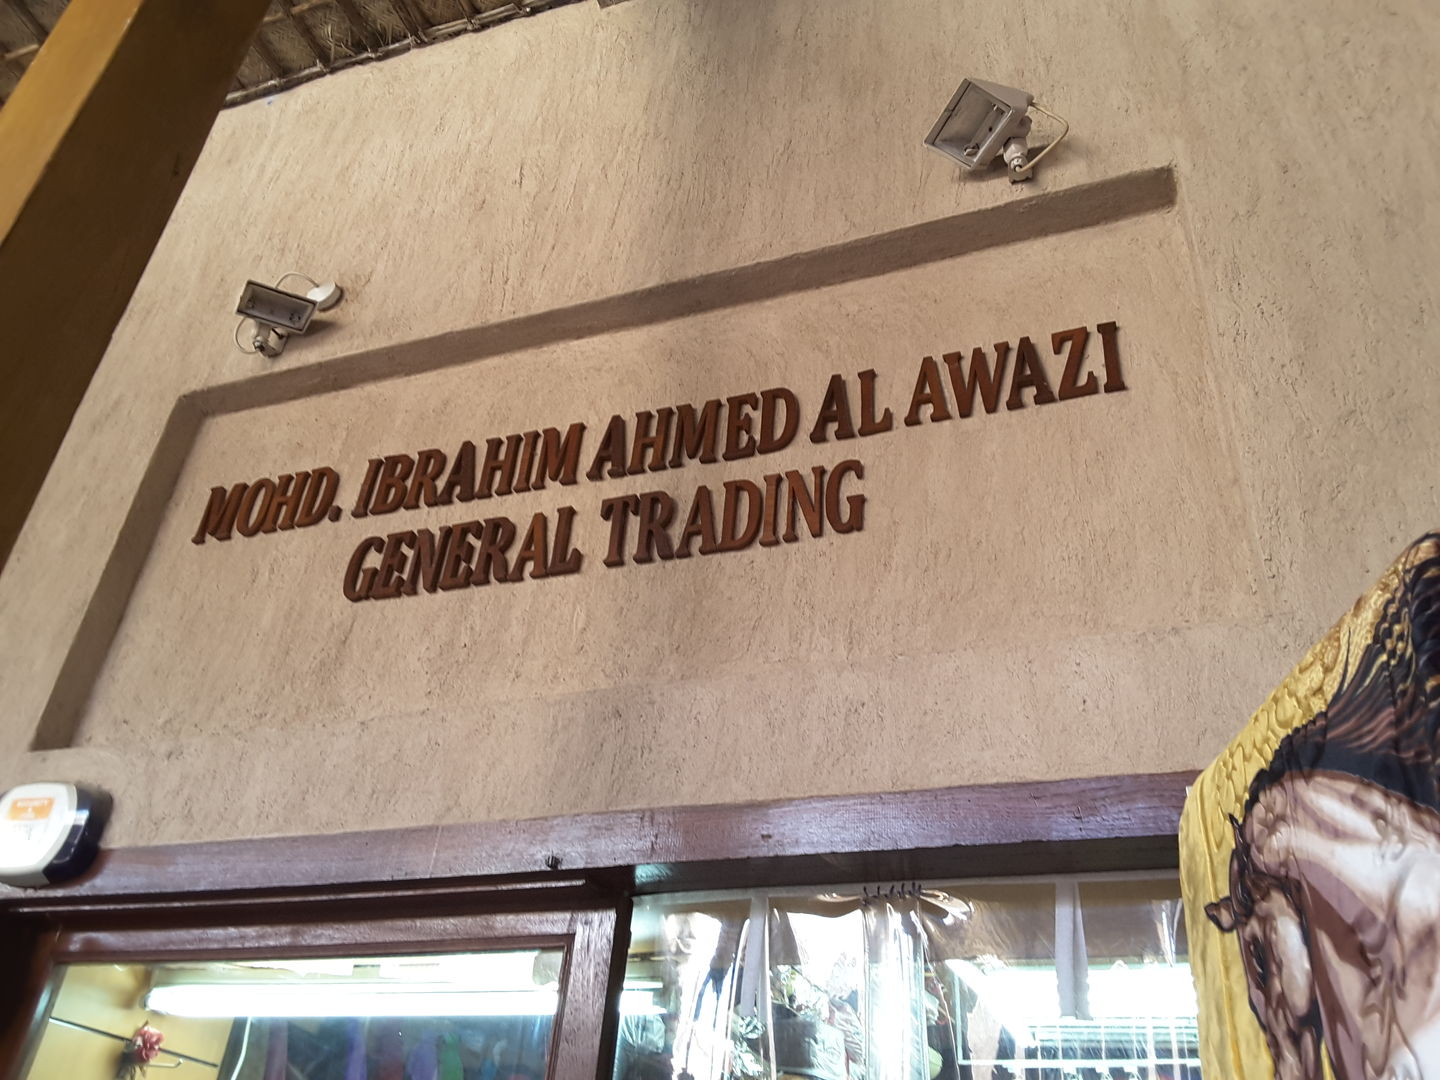 HiDubai-business-mohd-ibrahim-ahmed-al-awazi-general-trading-b2b-services-distributors-wholesalers-al-ras-dubai-2